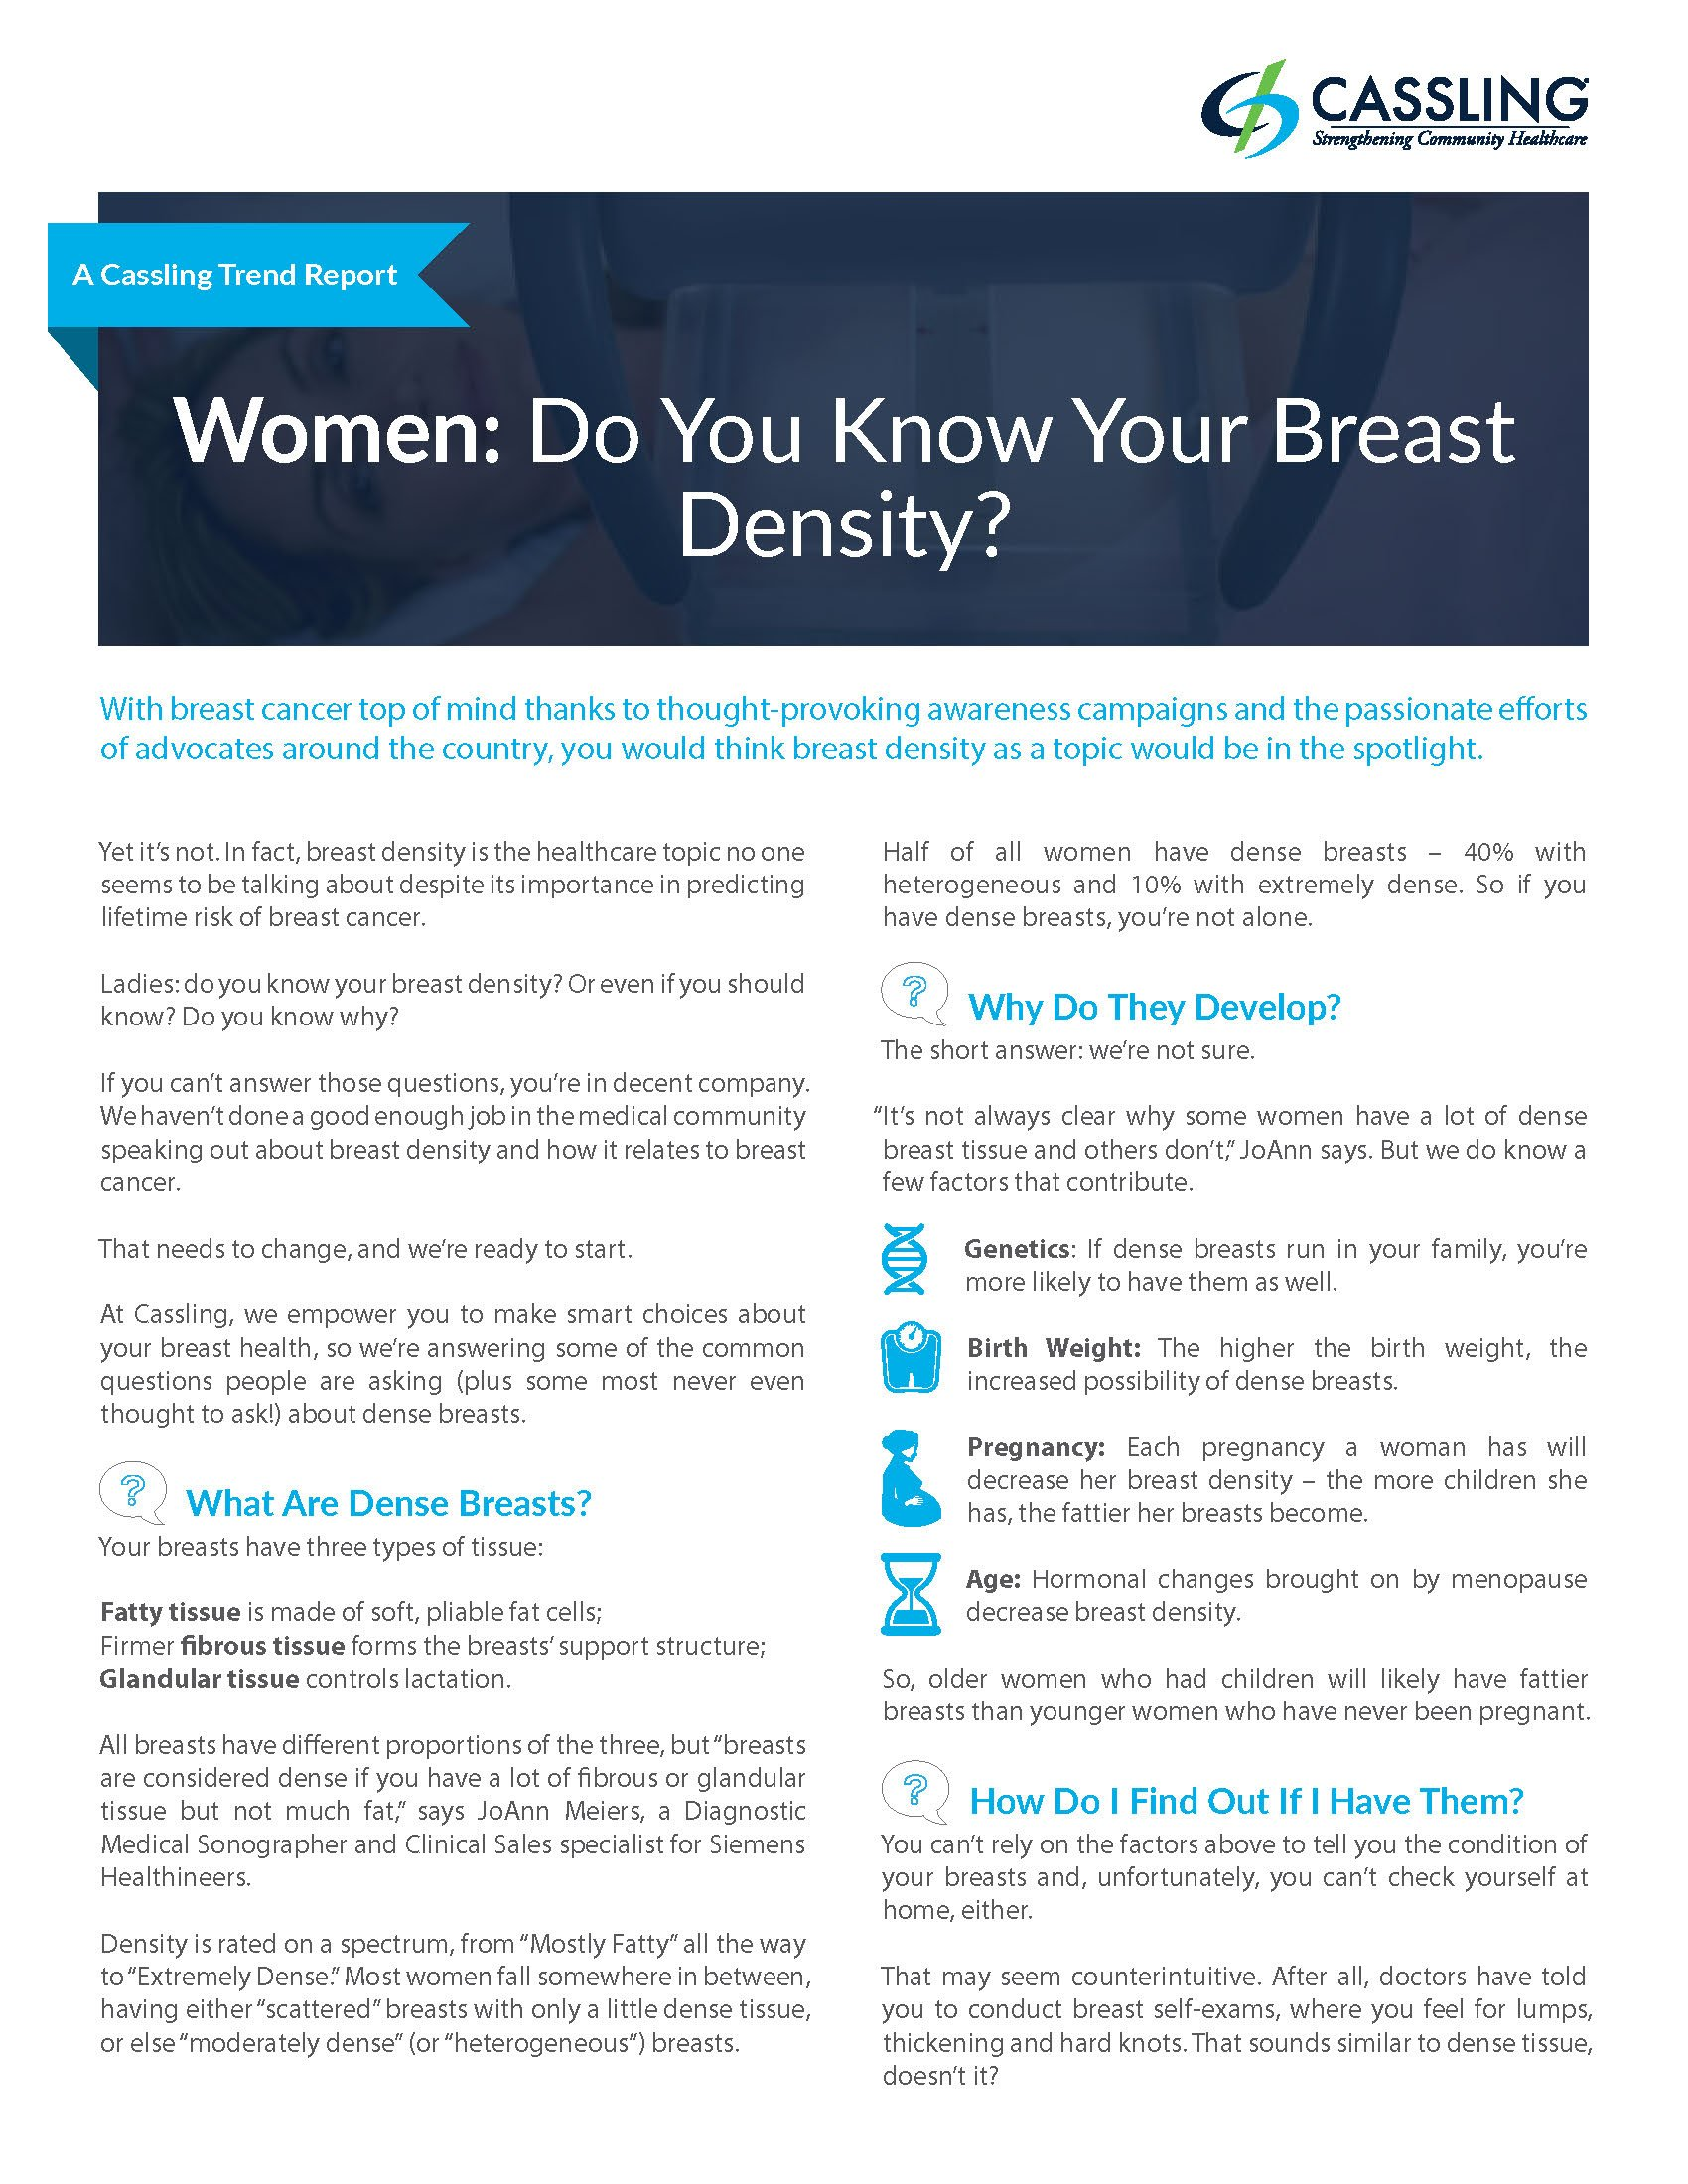 ABVS-Breast-Density-TrendReport-Cover.jpg